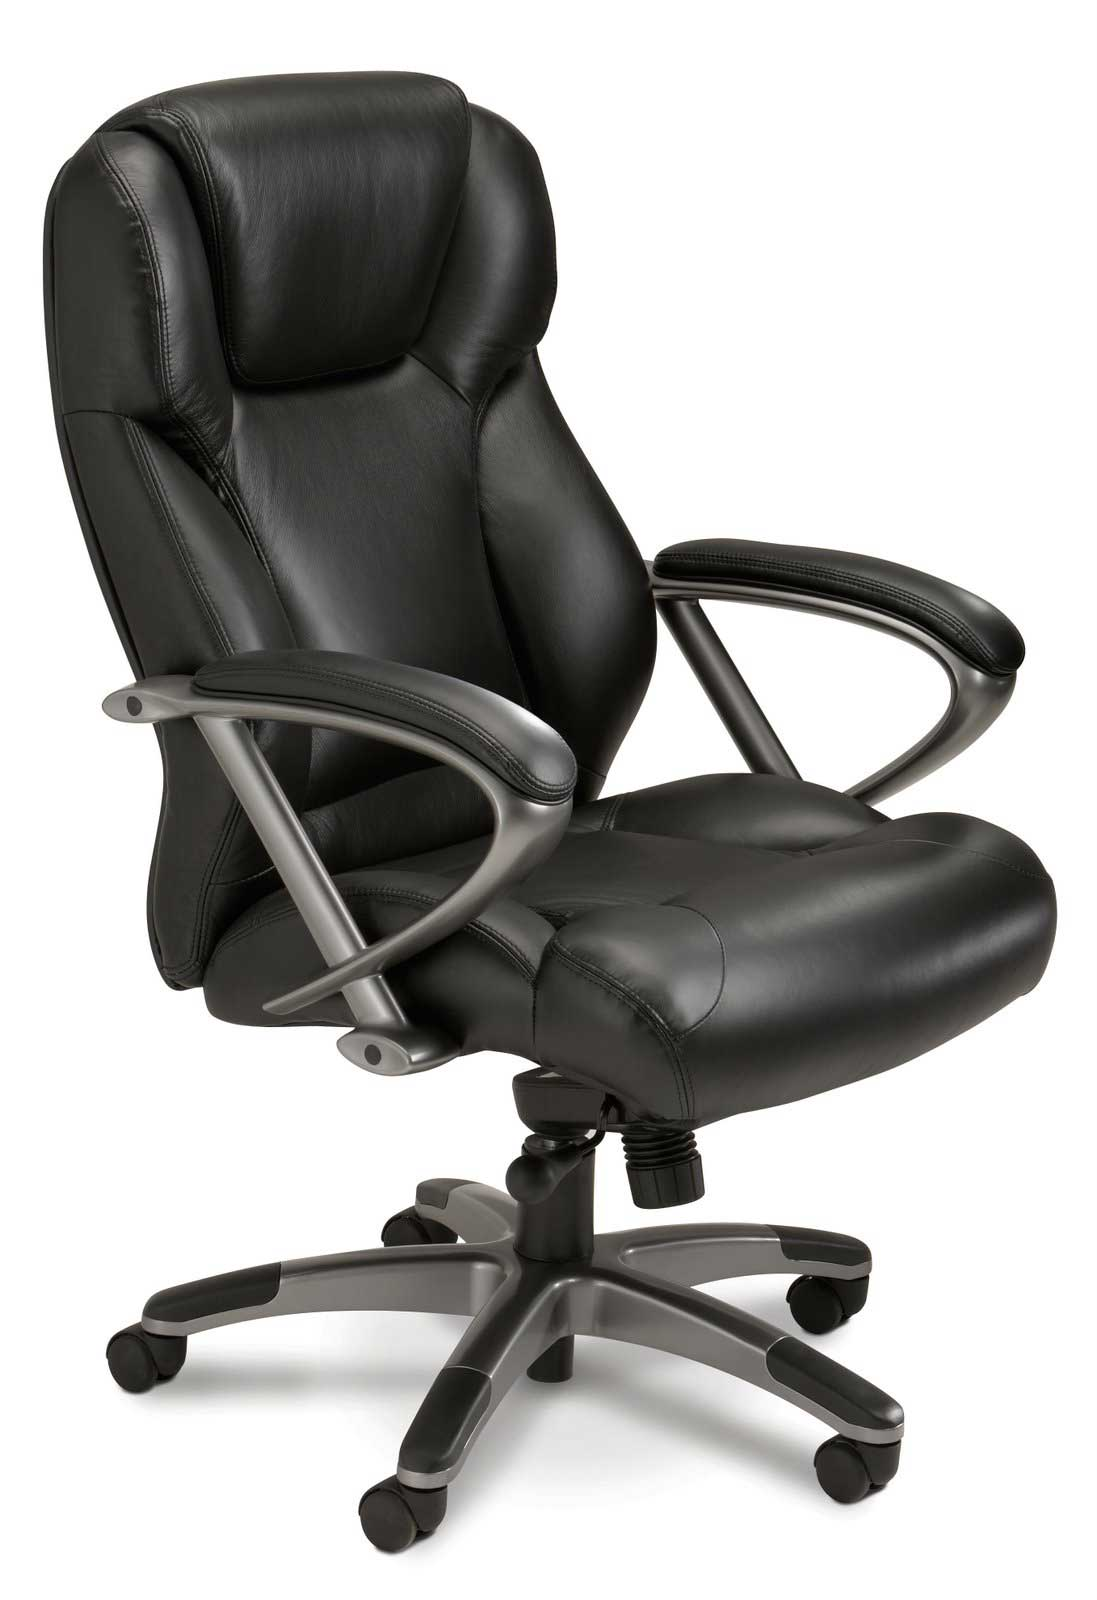 Luxury Office Chairs for Executive | Office Furniture